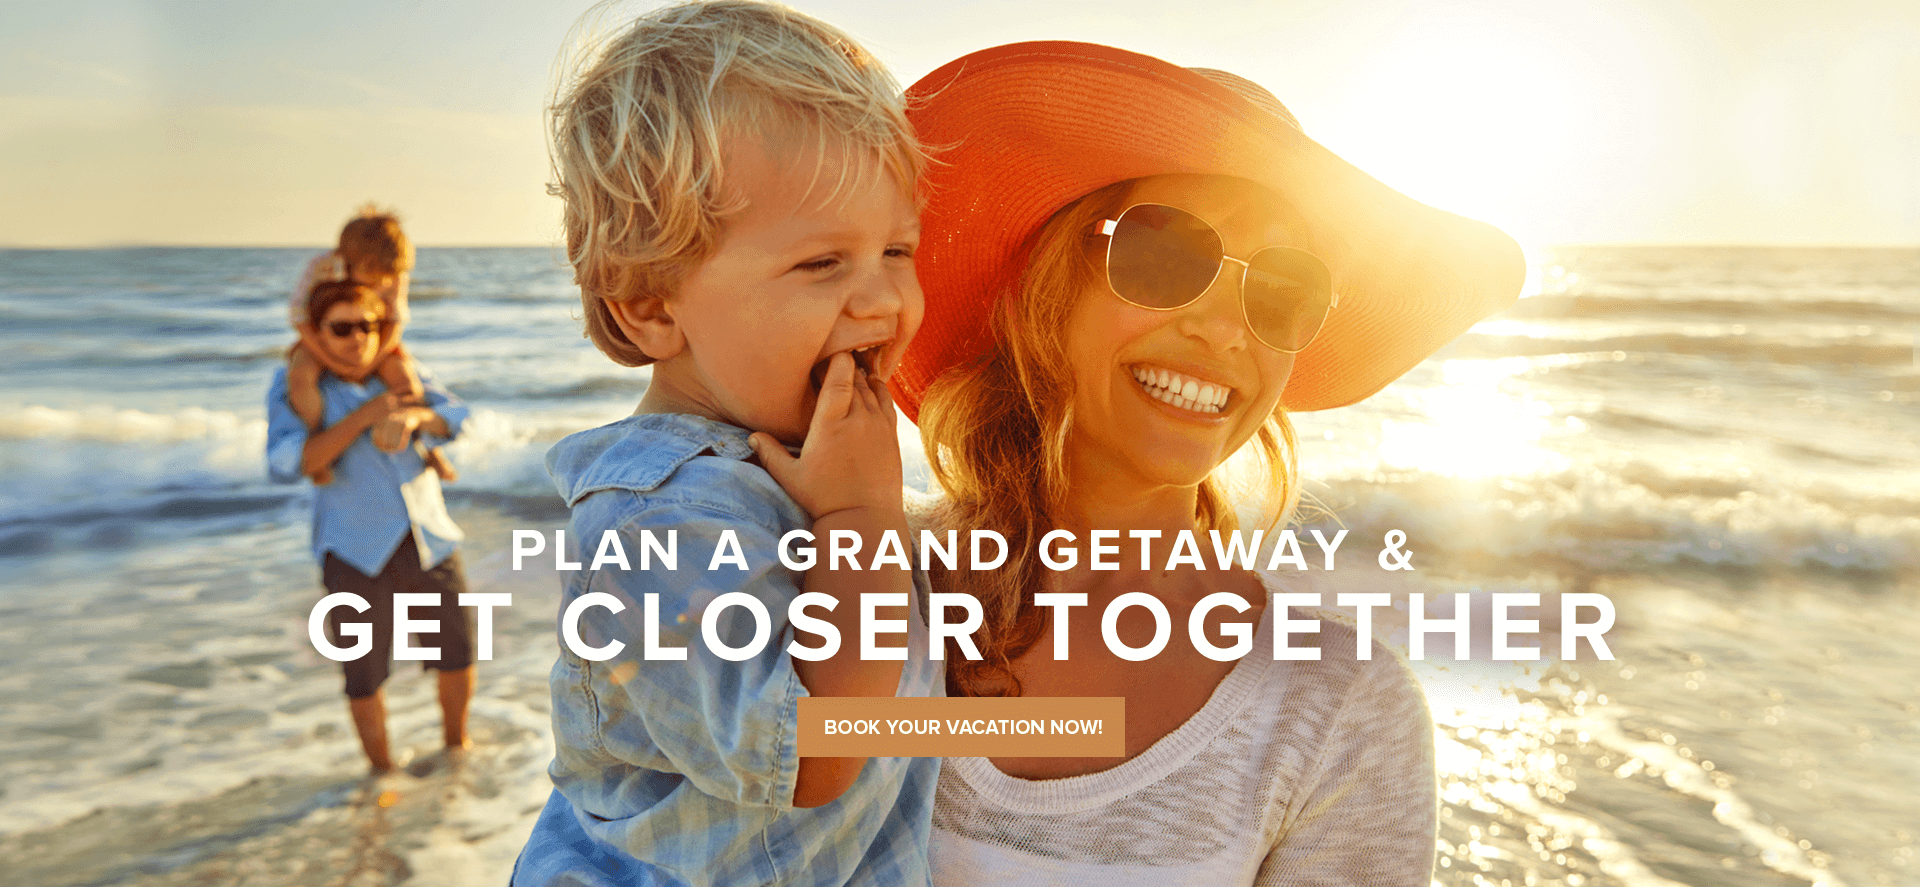 Plan a grand getaway & get closer together